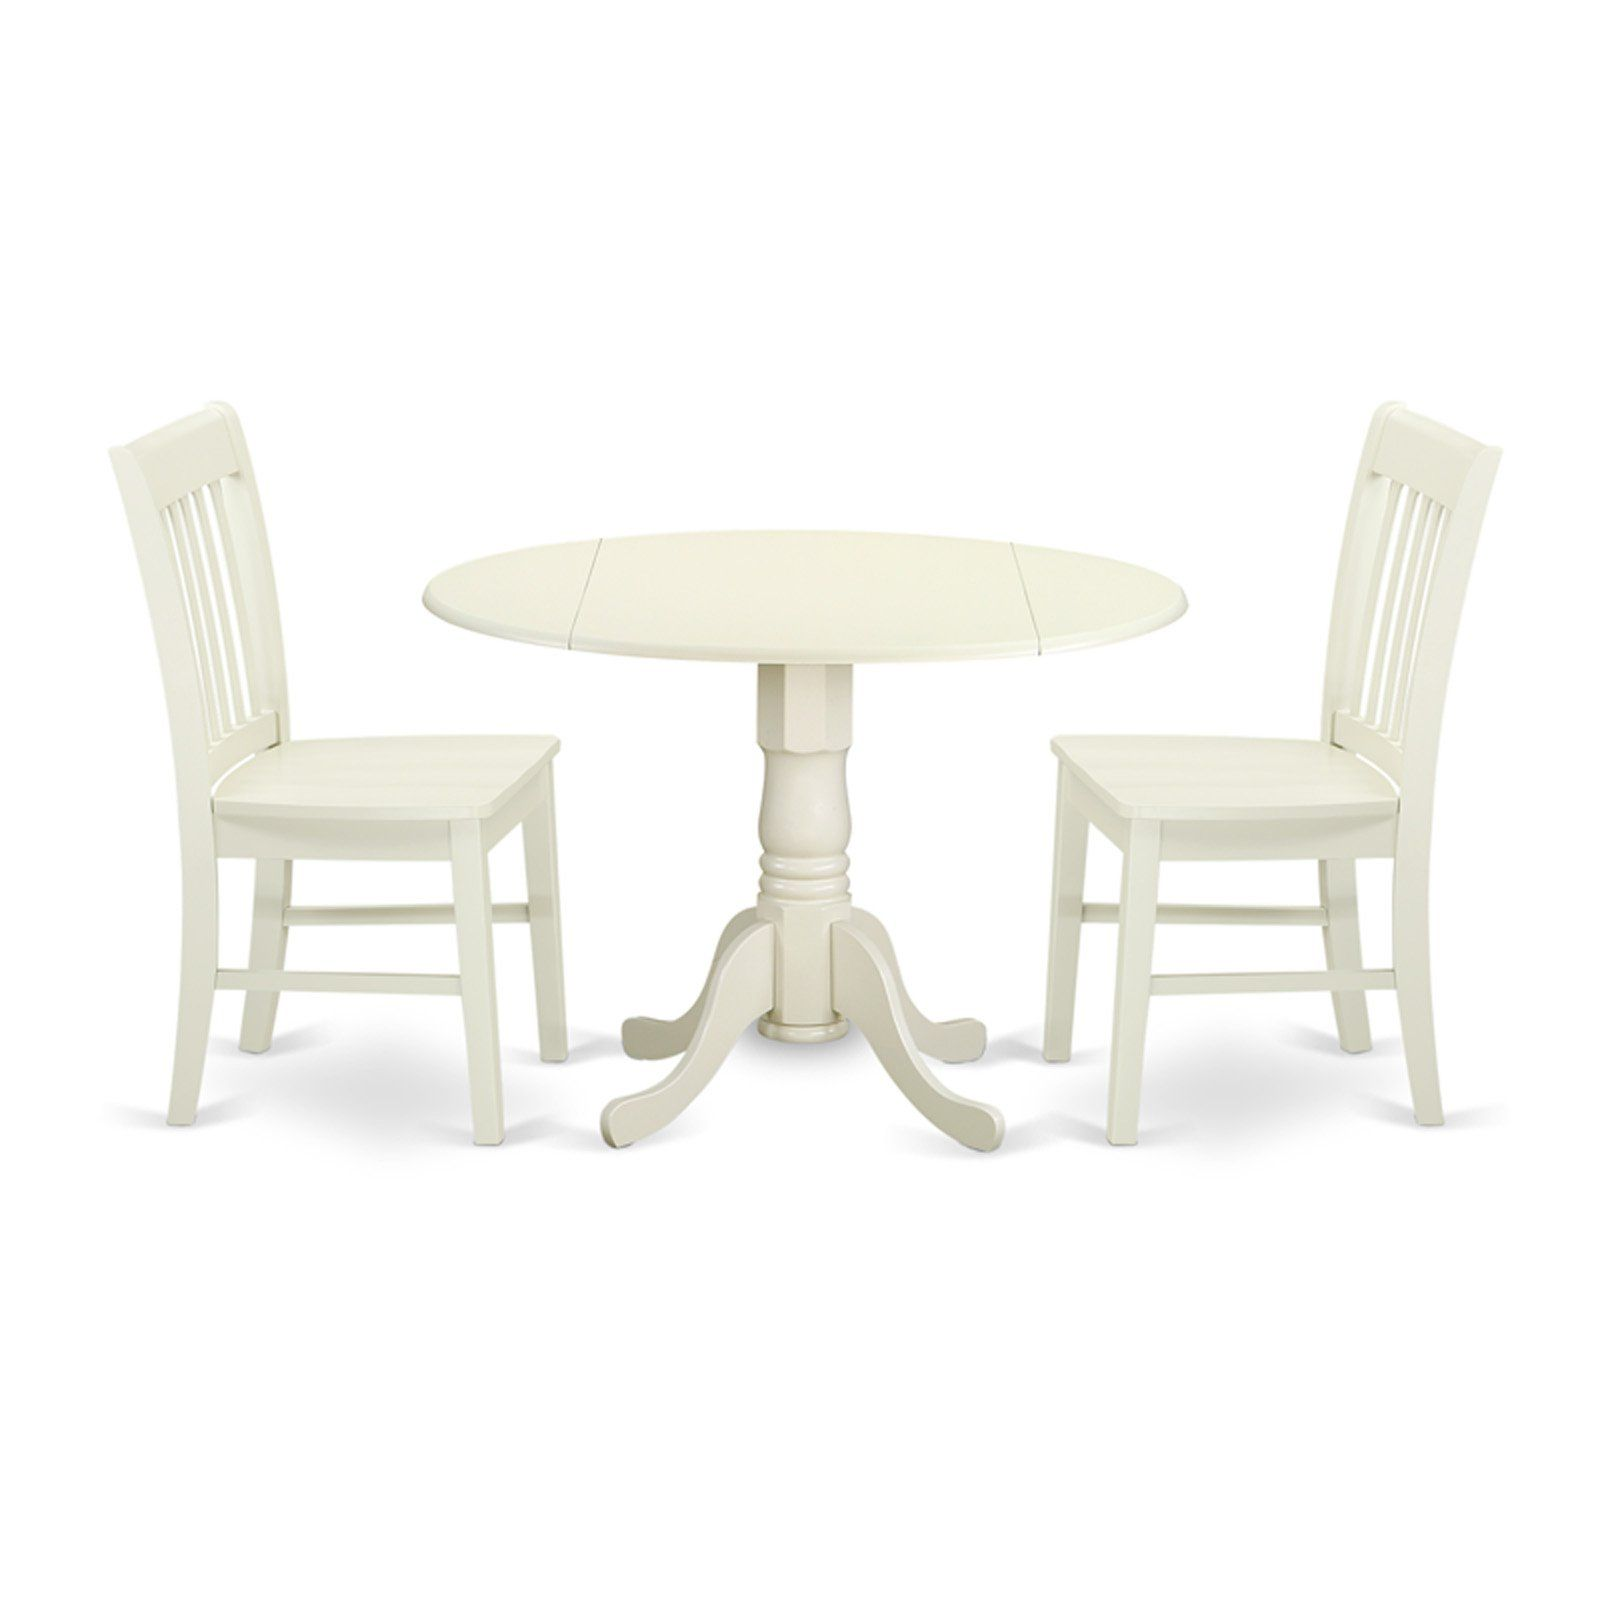 East West Furniture Dublin Dlno3 Three Piece Drop Leaf Dining Set In 2019 Circular Dining Table Dining Room Table Dining Table